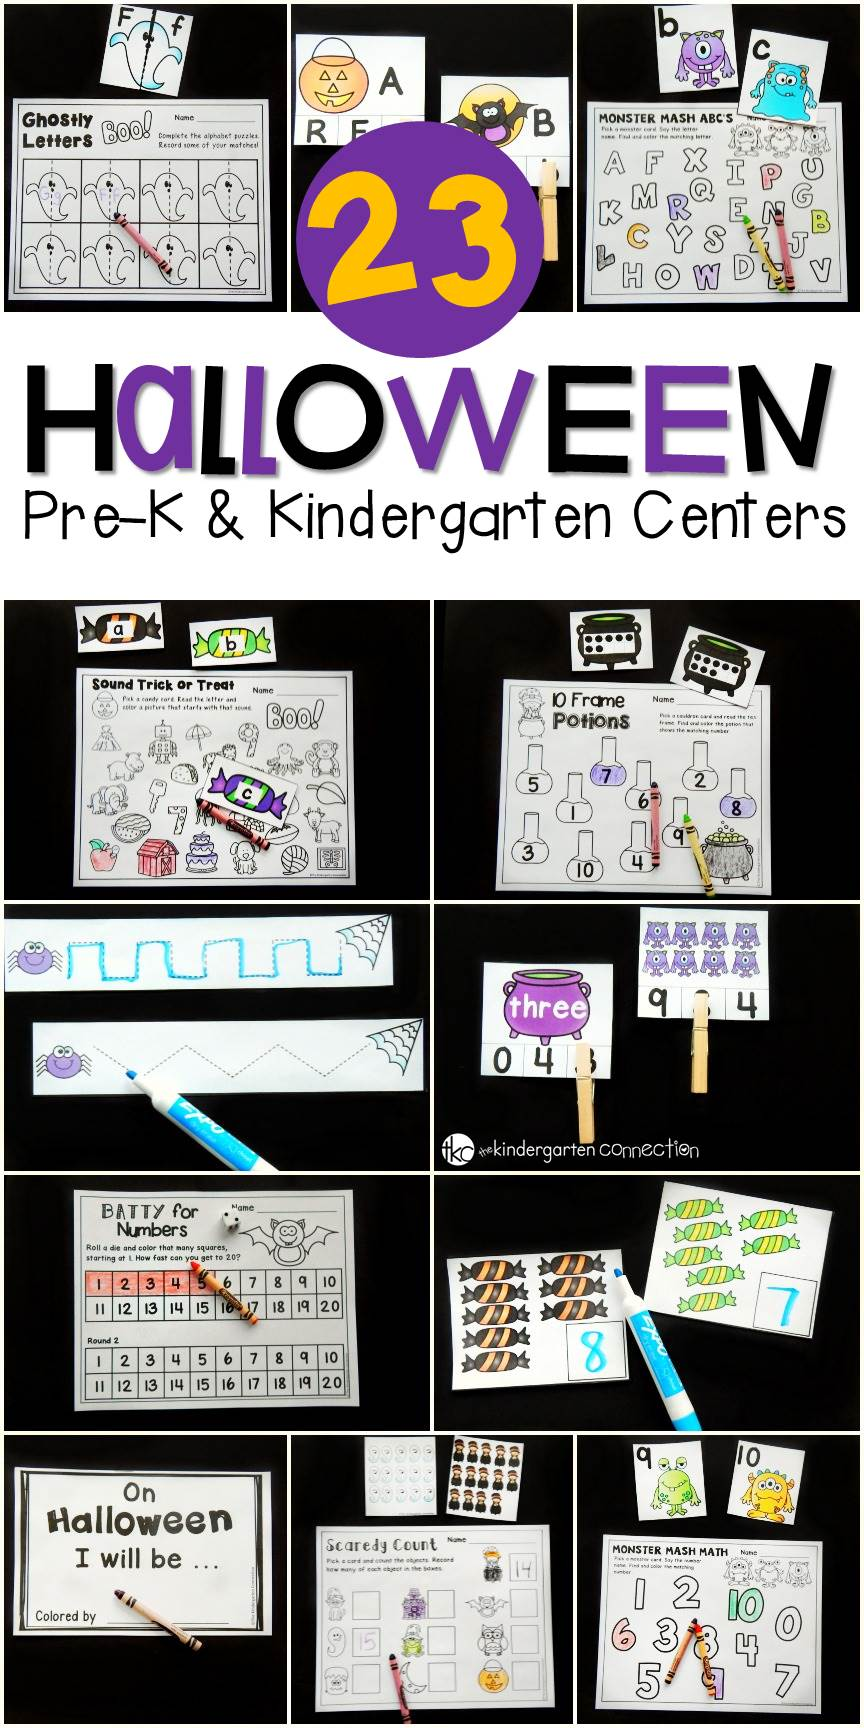 These Halloween Centers are a great way to work on letters, sight words, counting, shapes, addition, and more with Pre-K and Kindergarten students!